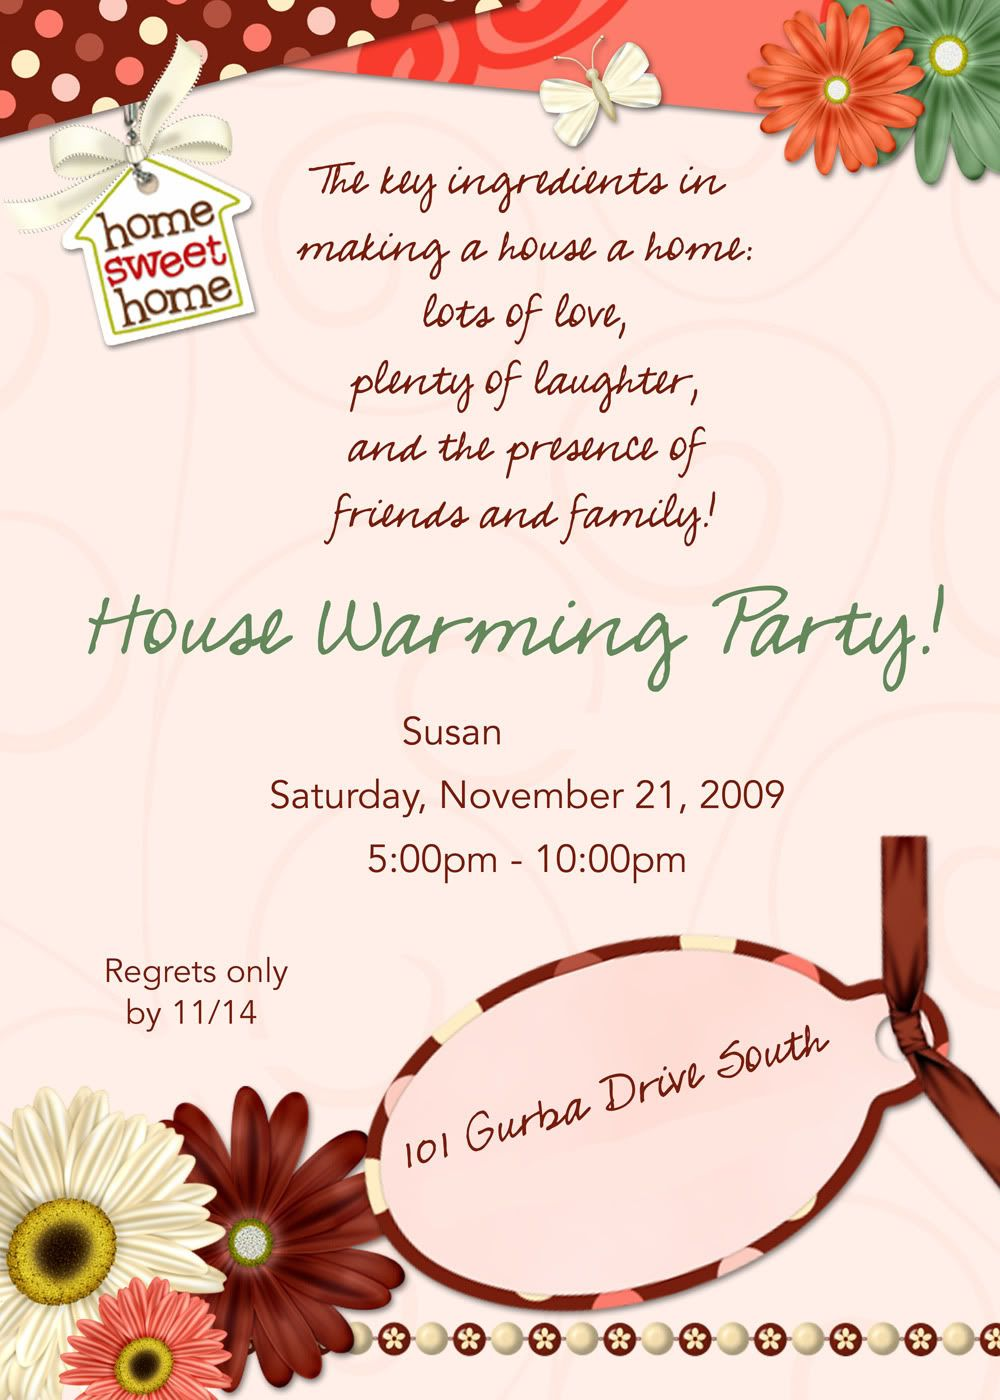 Housewarming Invitations Message Housewarming Invitation Wording Housewarming Party Invitations House Warming Invitations